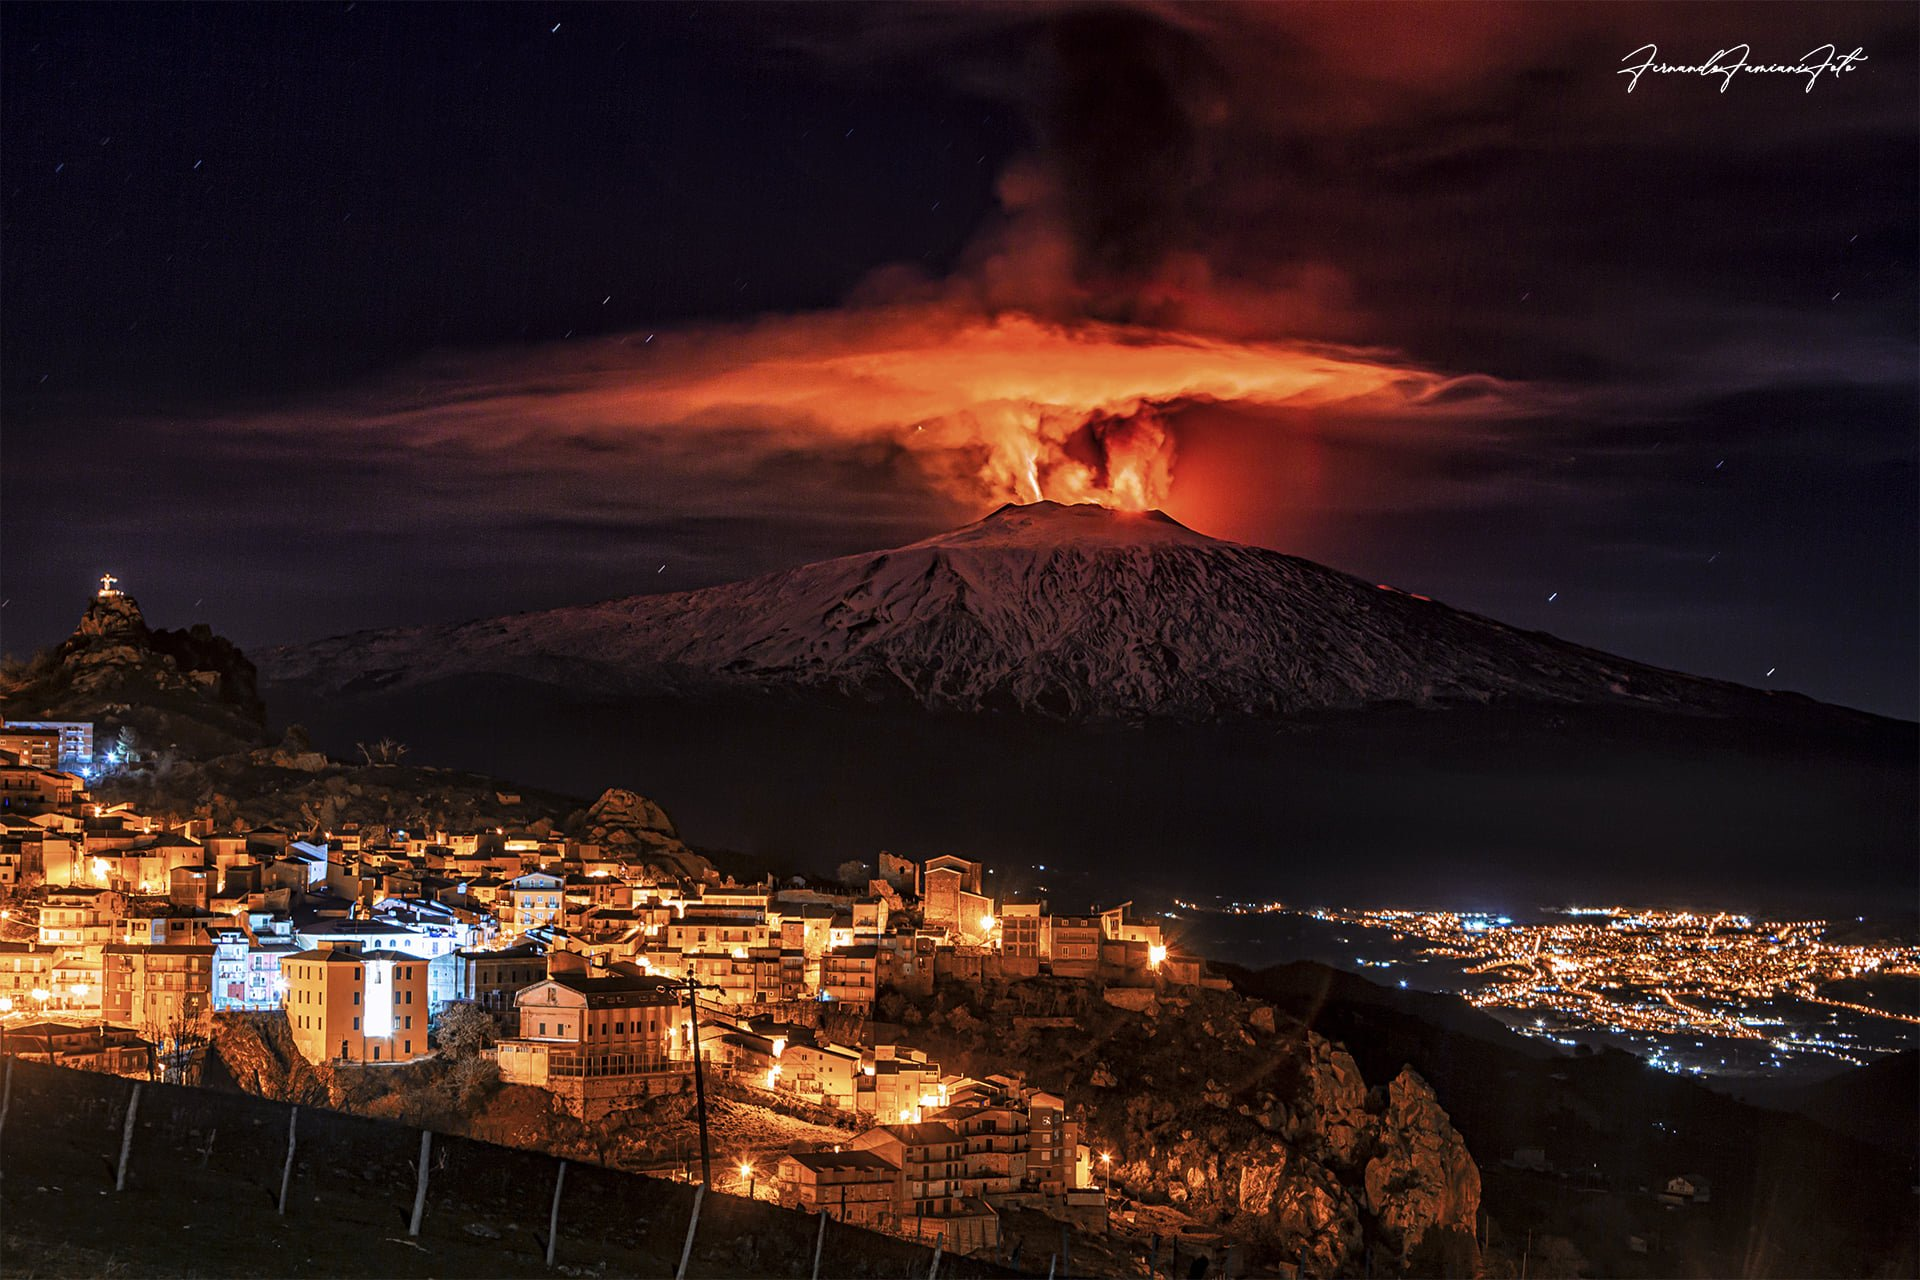 4th eruption, 20th feb 2021. View from San Teodoro town, F. Famiani